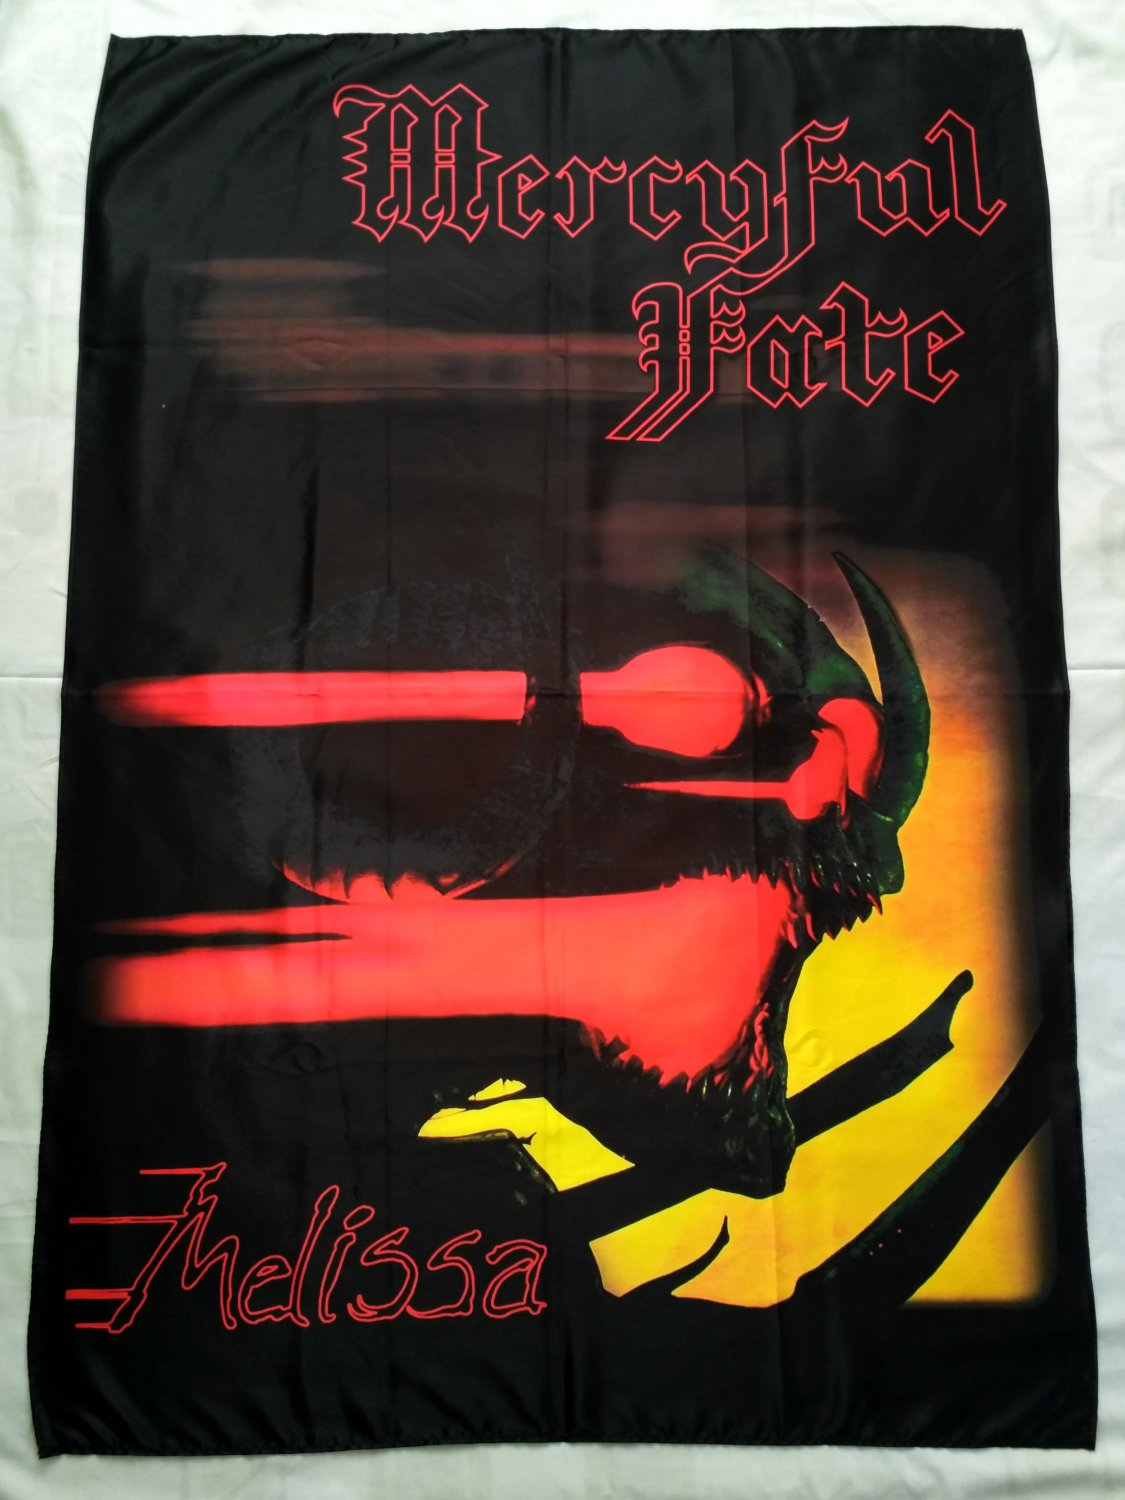 MERCYFUL FATE - Melissa FLAG Heavy death metal cloth poster